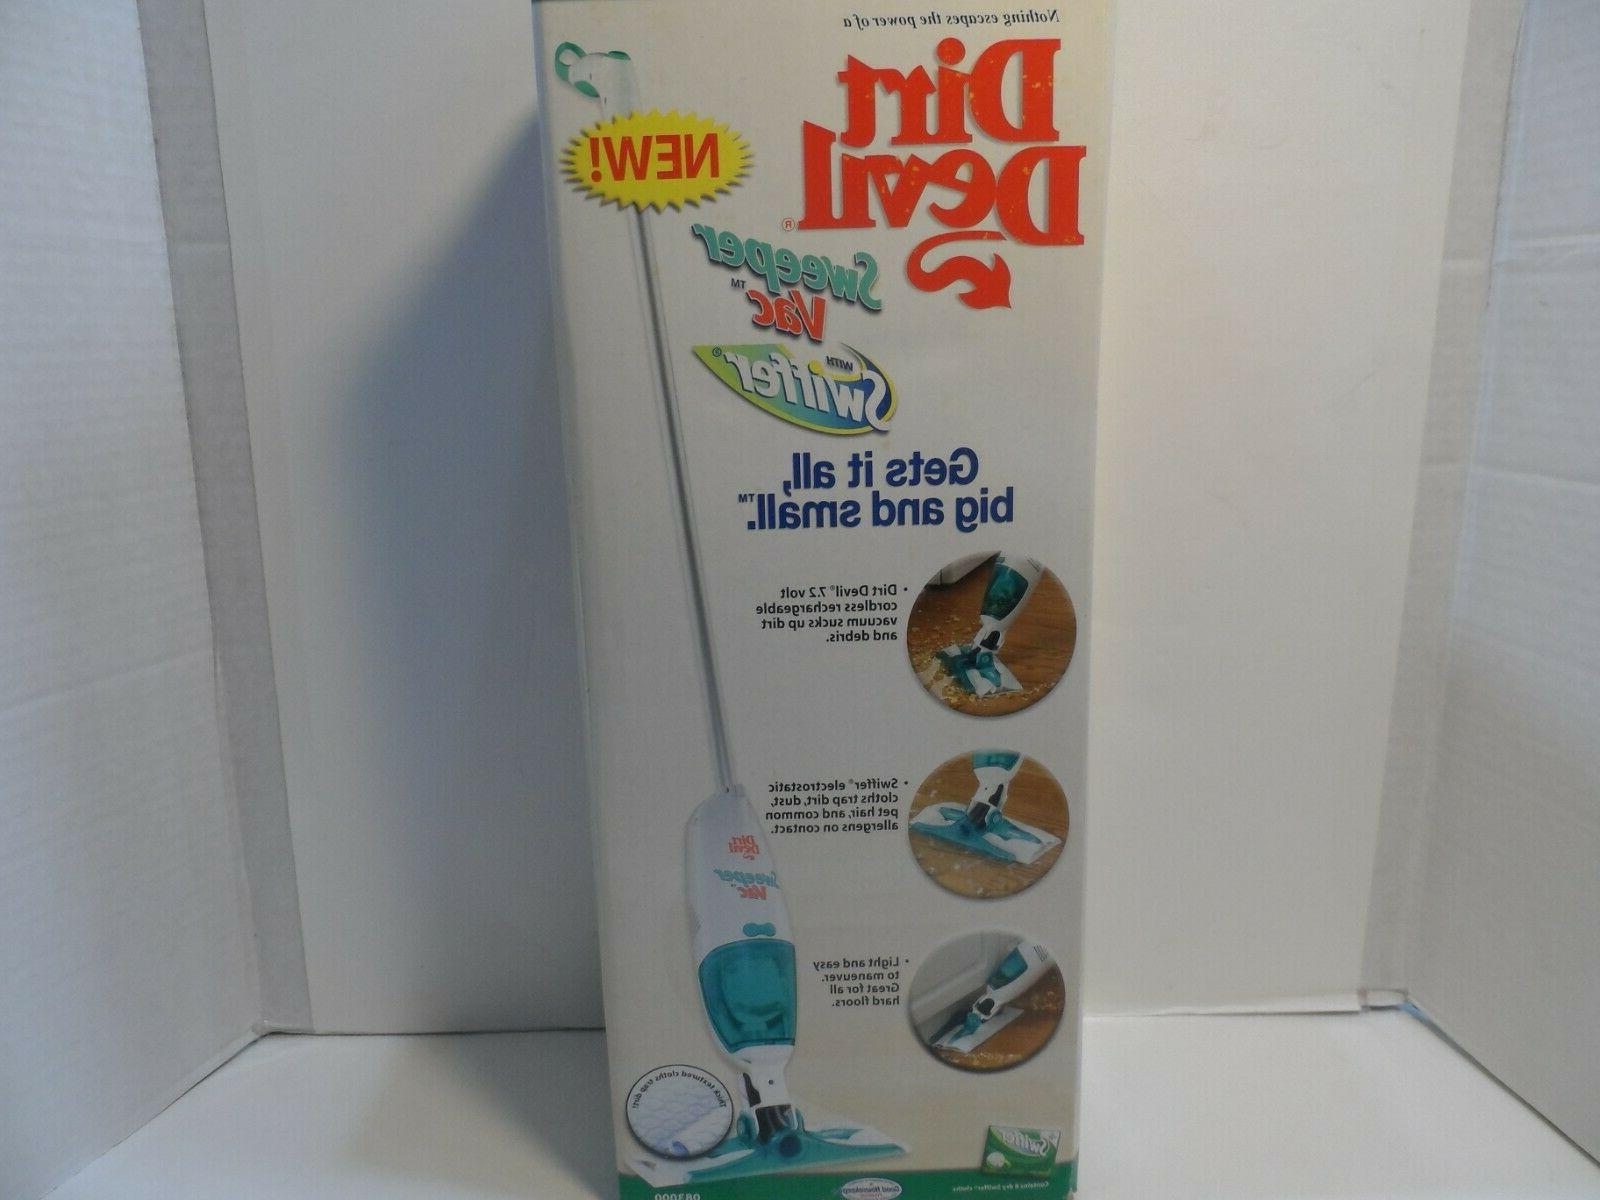 Dirt Devil Vac with Model New,sealed in